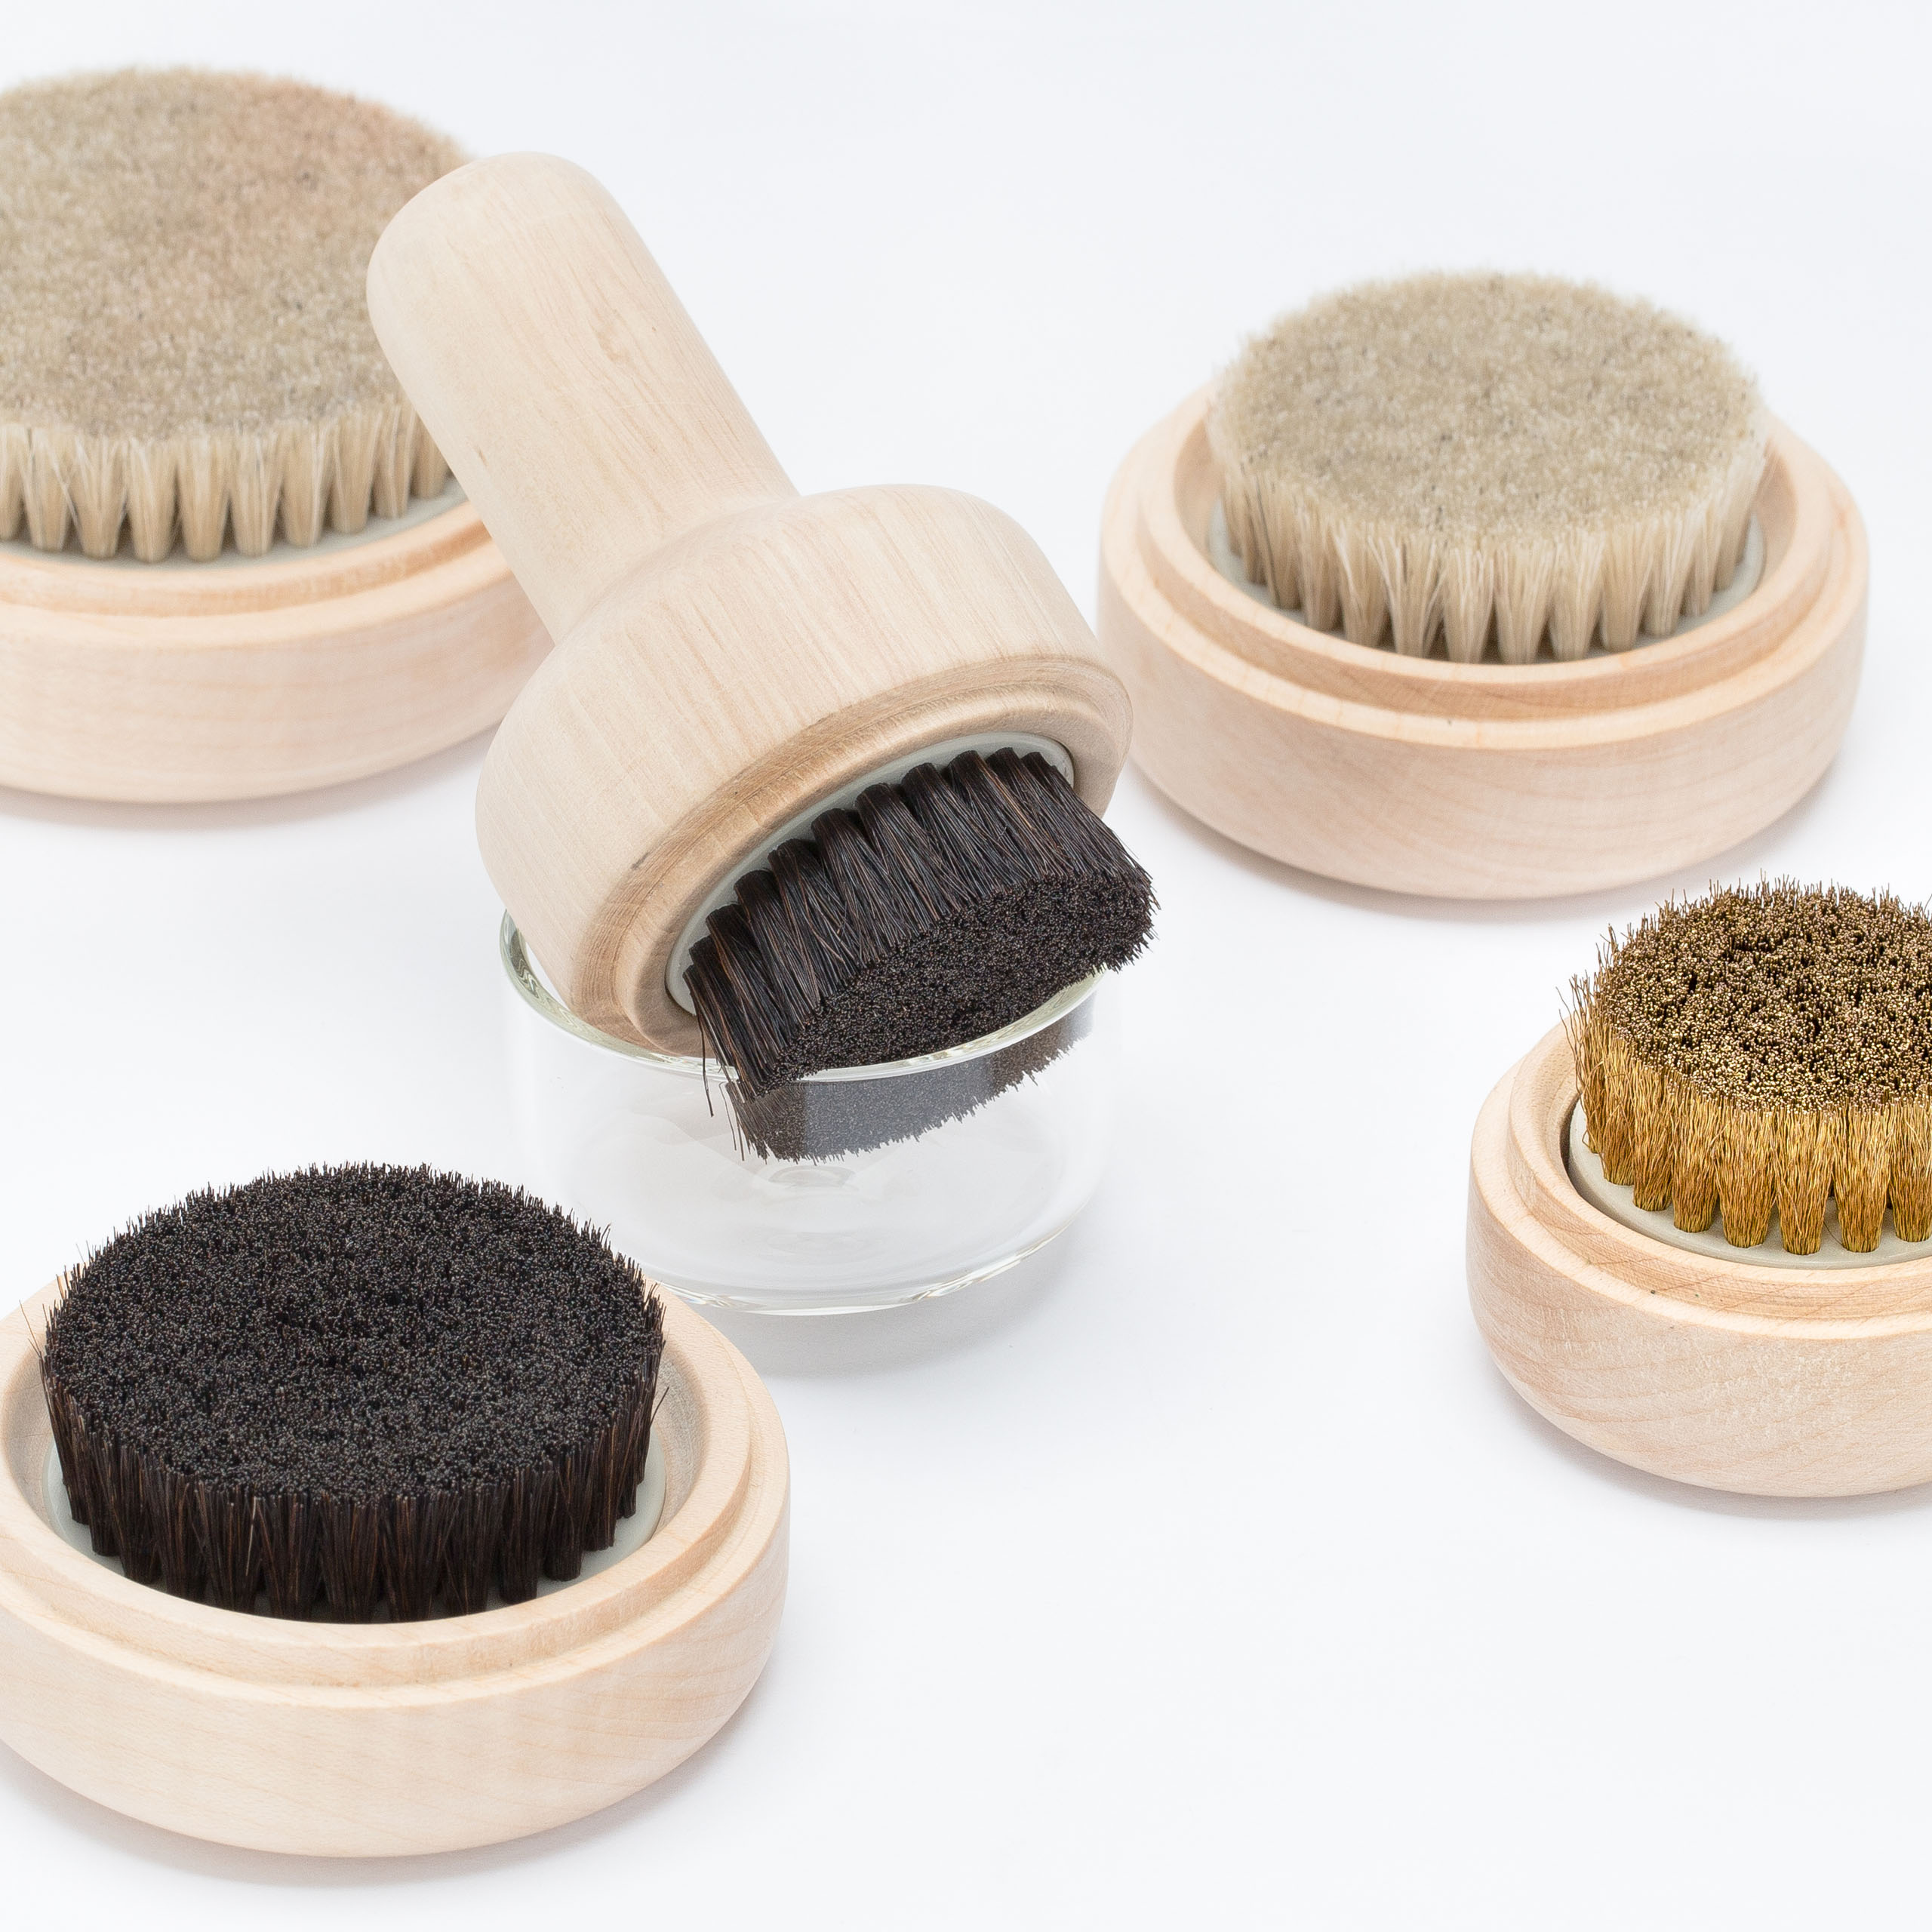 Five clothing brushes are arranged on a white backdrop.